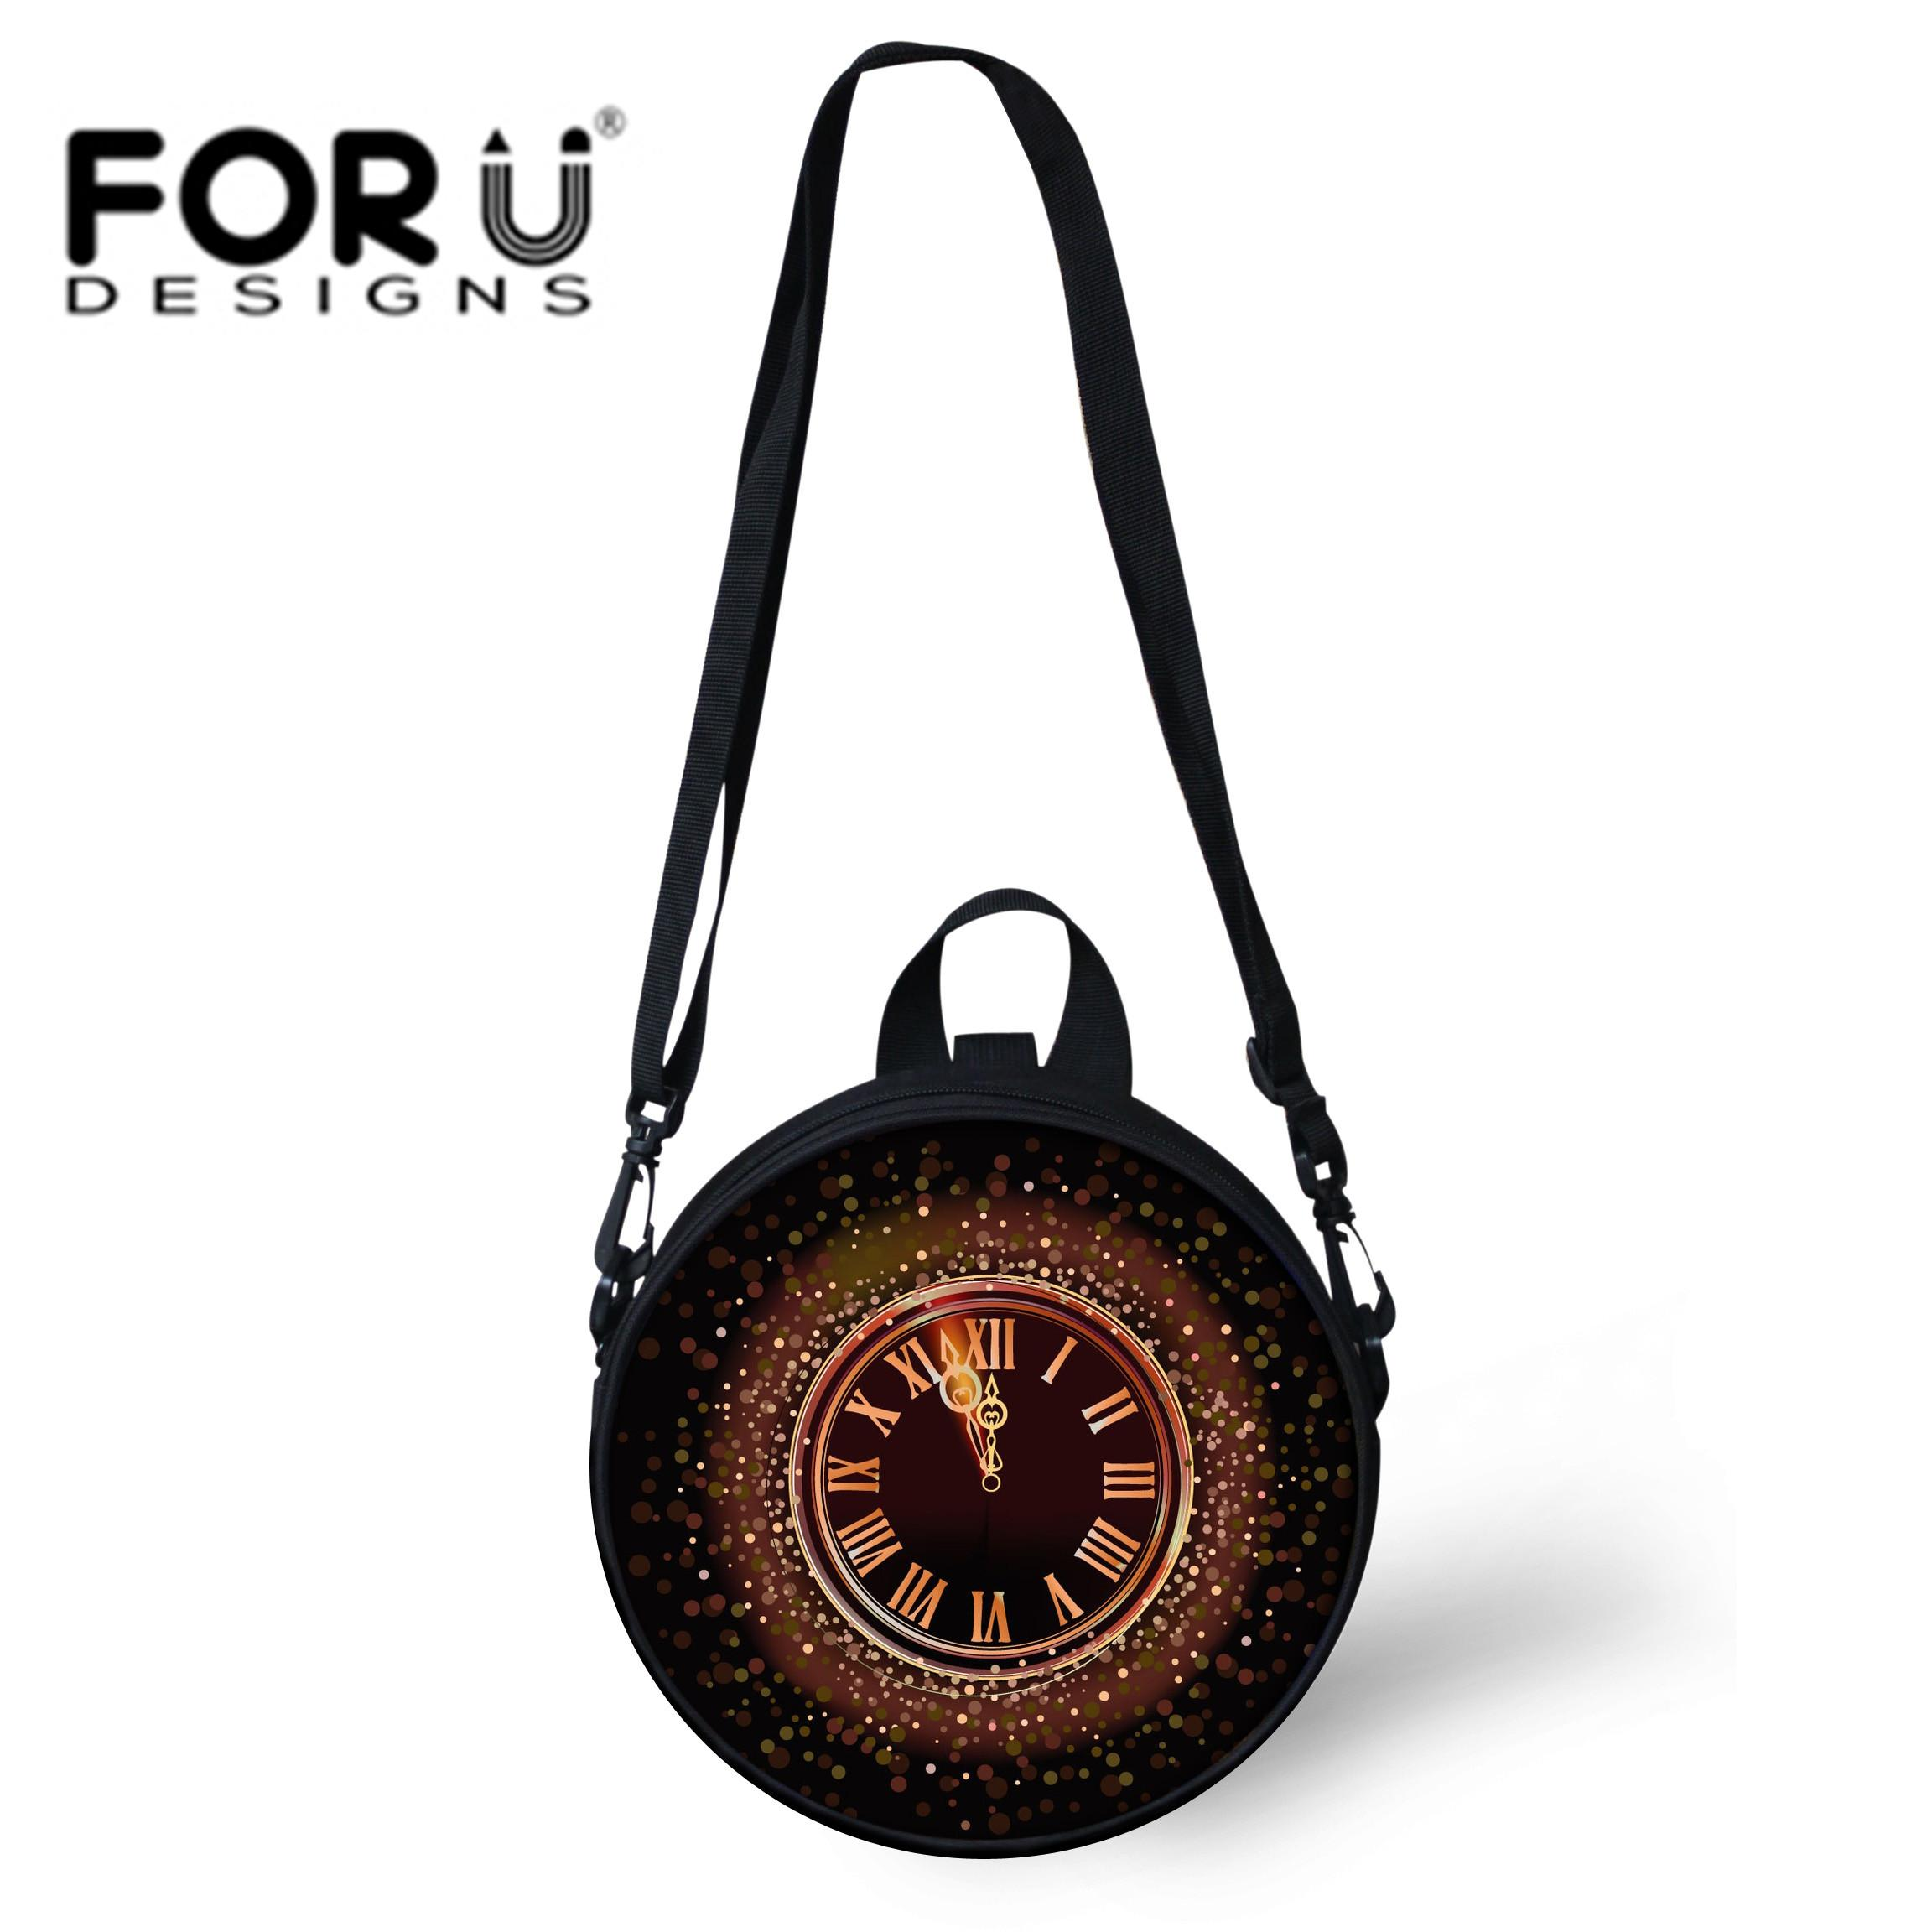 59e4c6cc56 FORUDESIGNS Round Women Bag Clock Print Crossbody Bags Womens Shoulder Bag  Ladies Cute Galaxy Women Messenger Bags Circle Purse Crossbody Bags Satchel  From ...